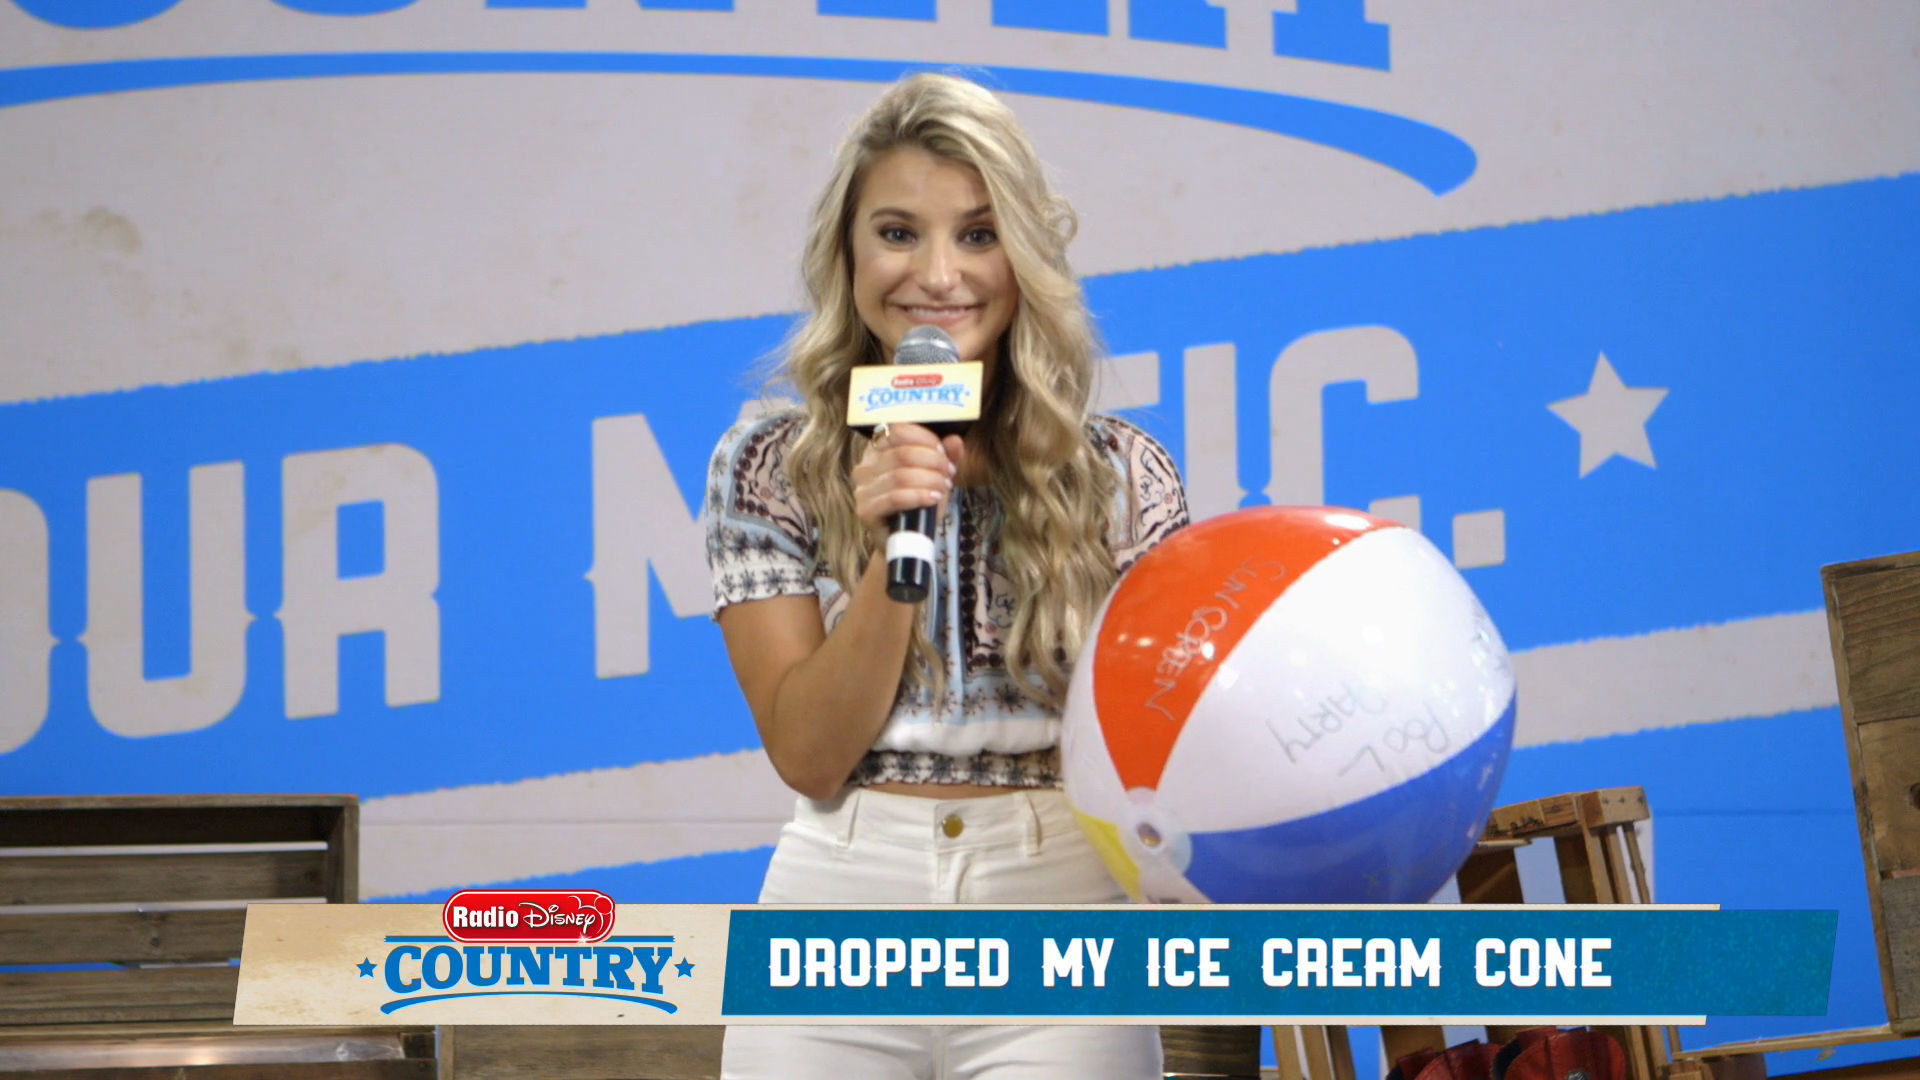 April Kry - Beach Ball Song Challenge | Radio Disney Country